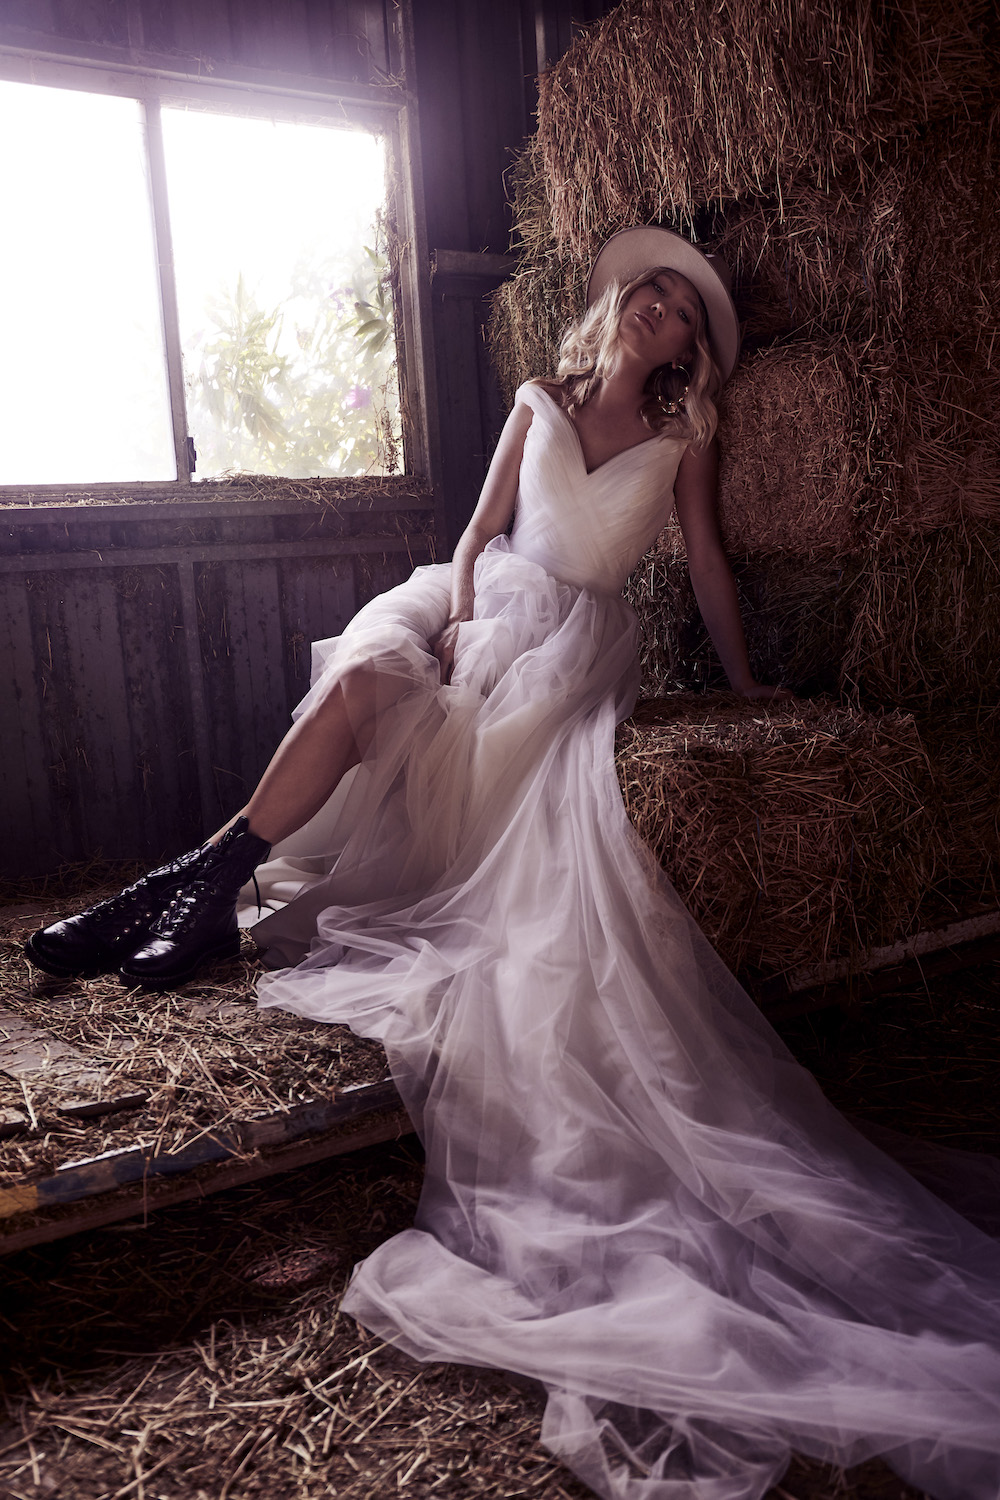 FOR LOVERS 2020 Bridal Collection by Australian Bridal Designer Moira Hughes